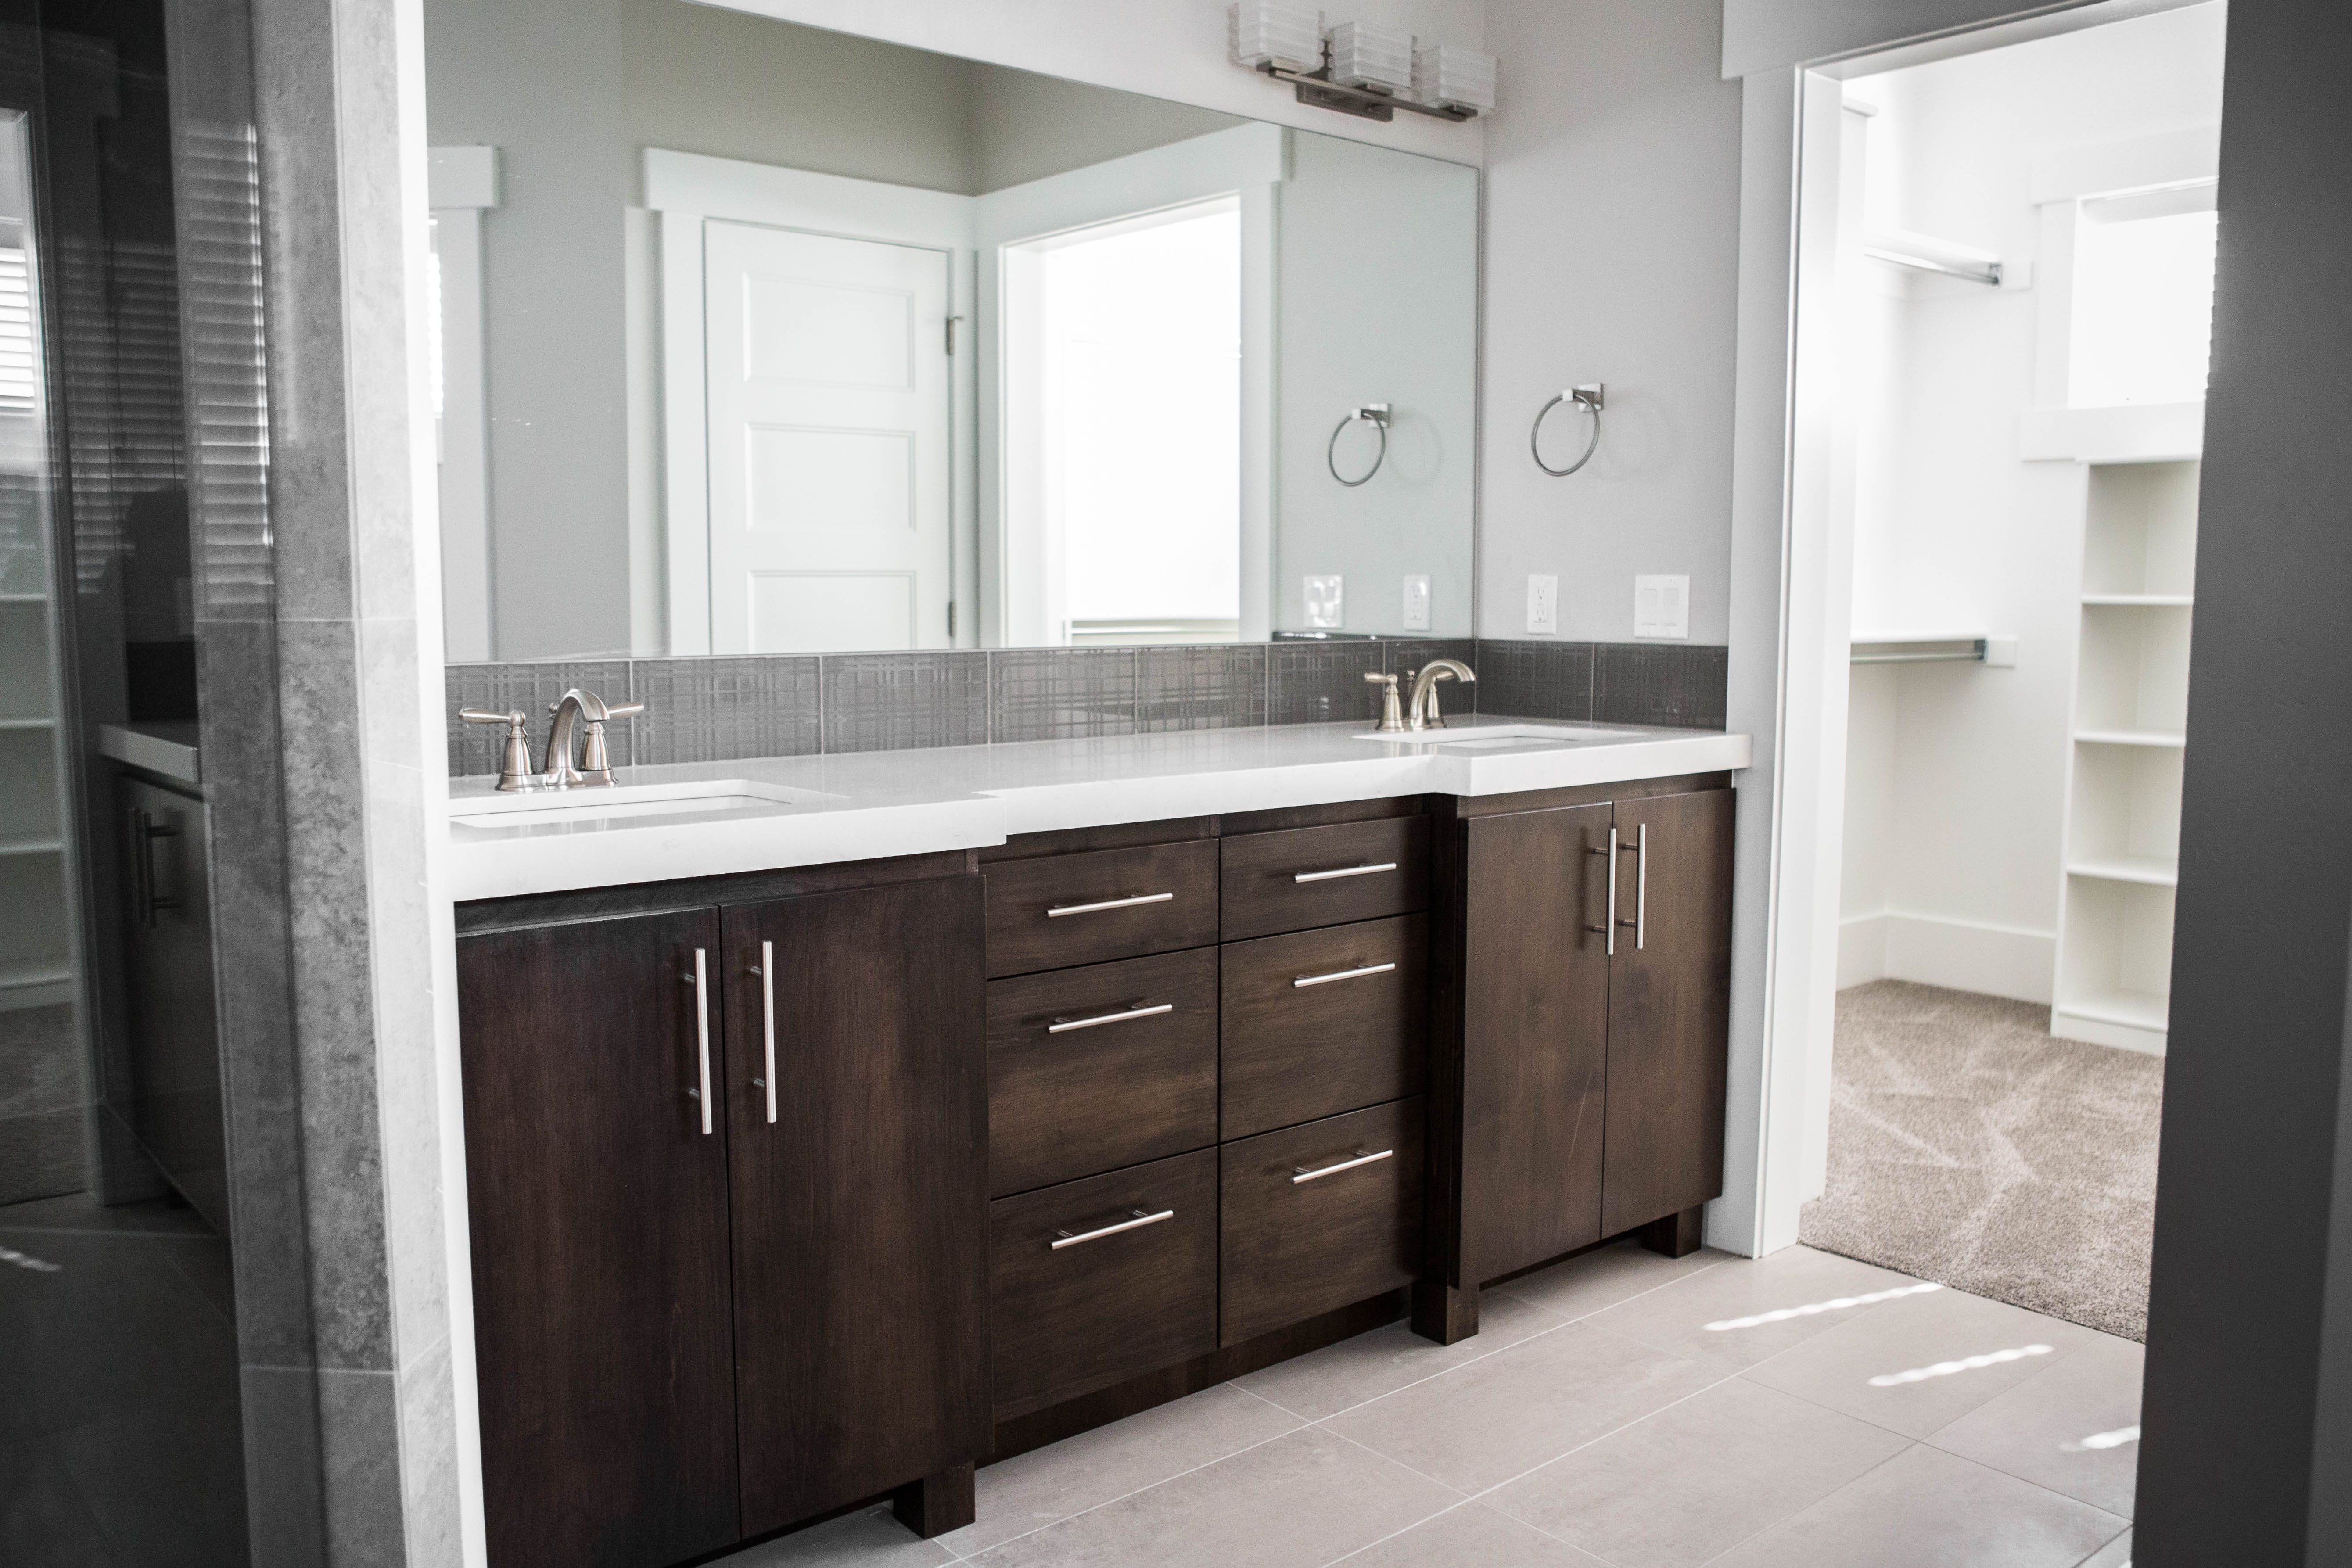 master bathrooms with big walk in closets are dreamyyy